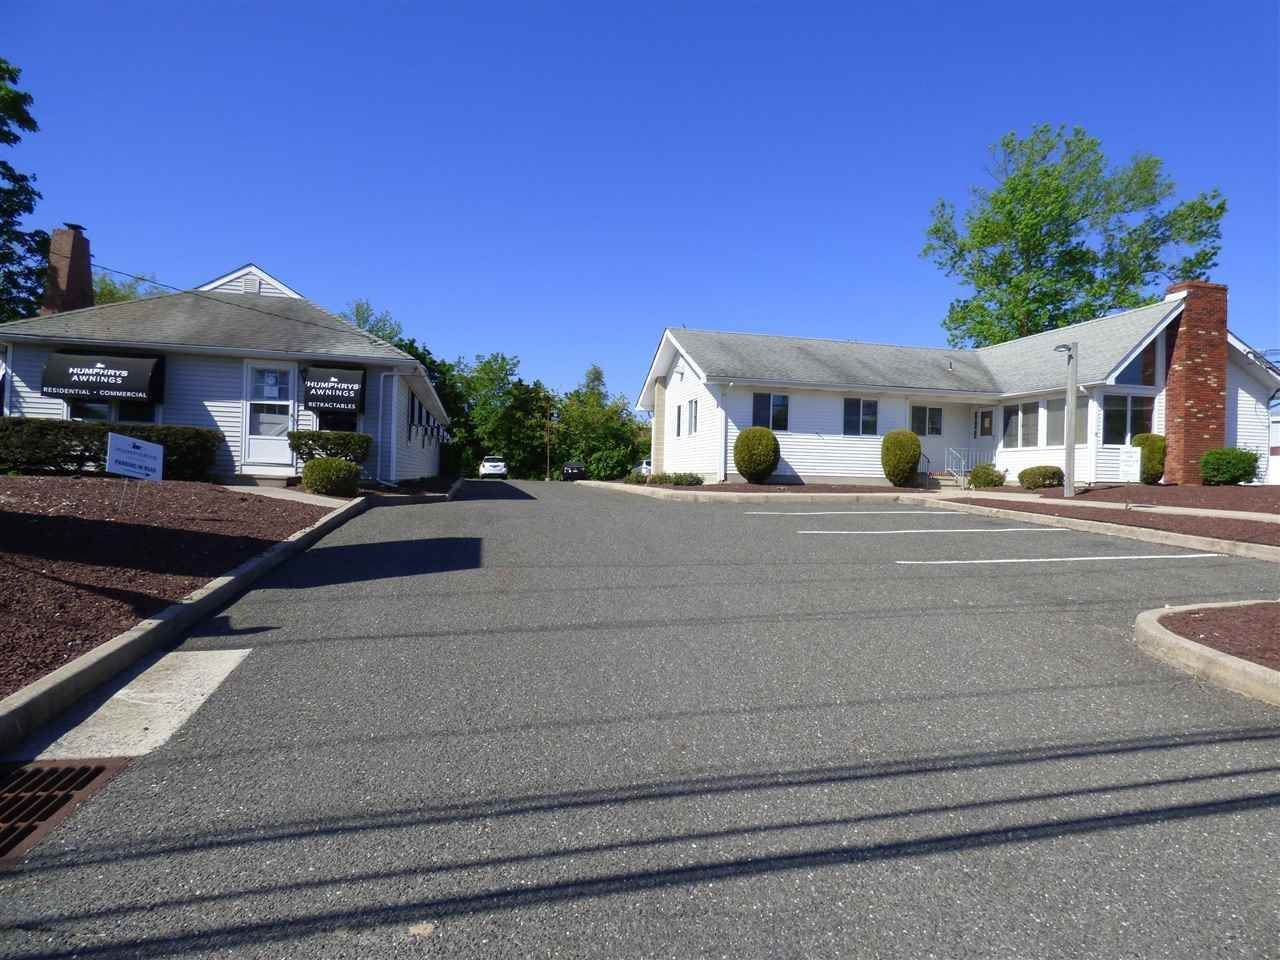 Commercial for Sale at 20 Roosevelt Boulevard Marmora, New Jersey 08223 United States